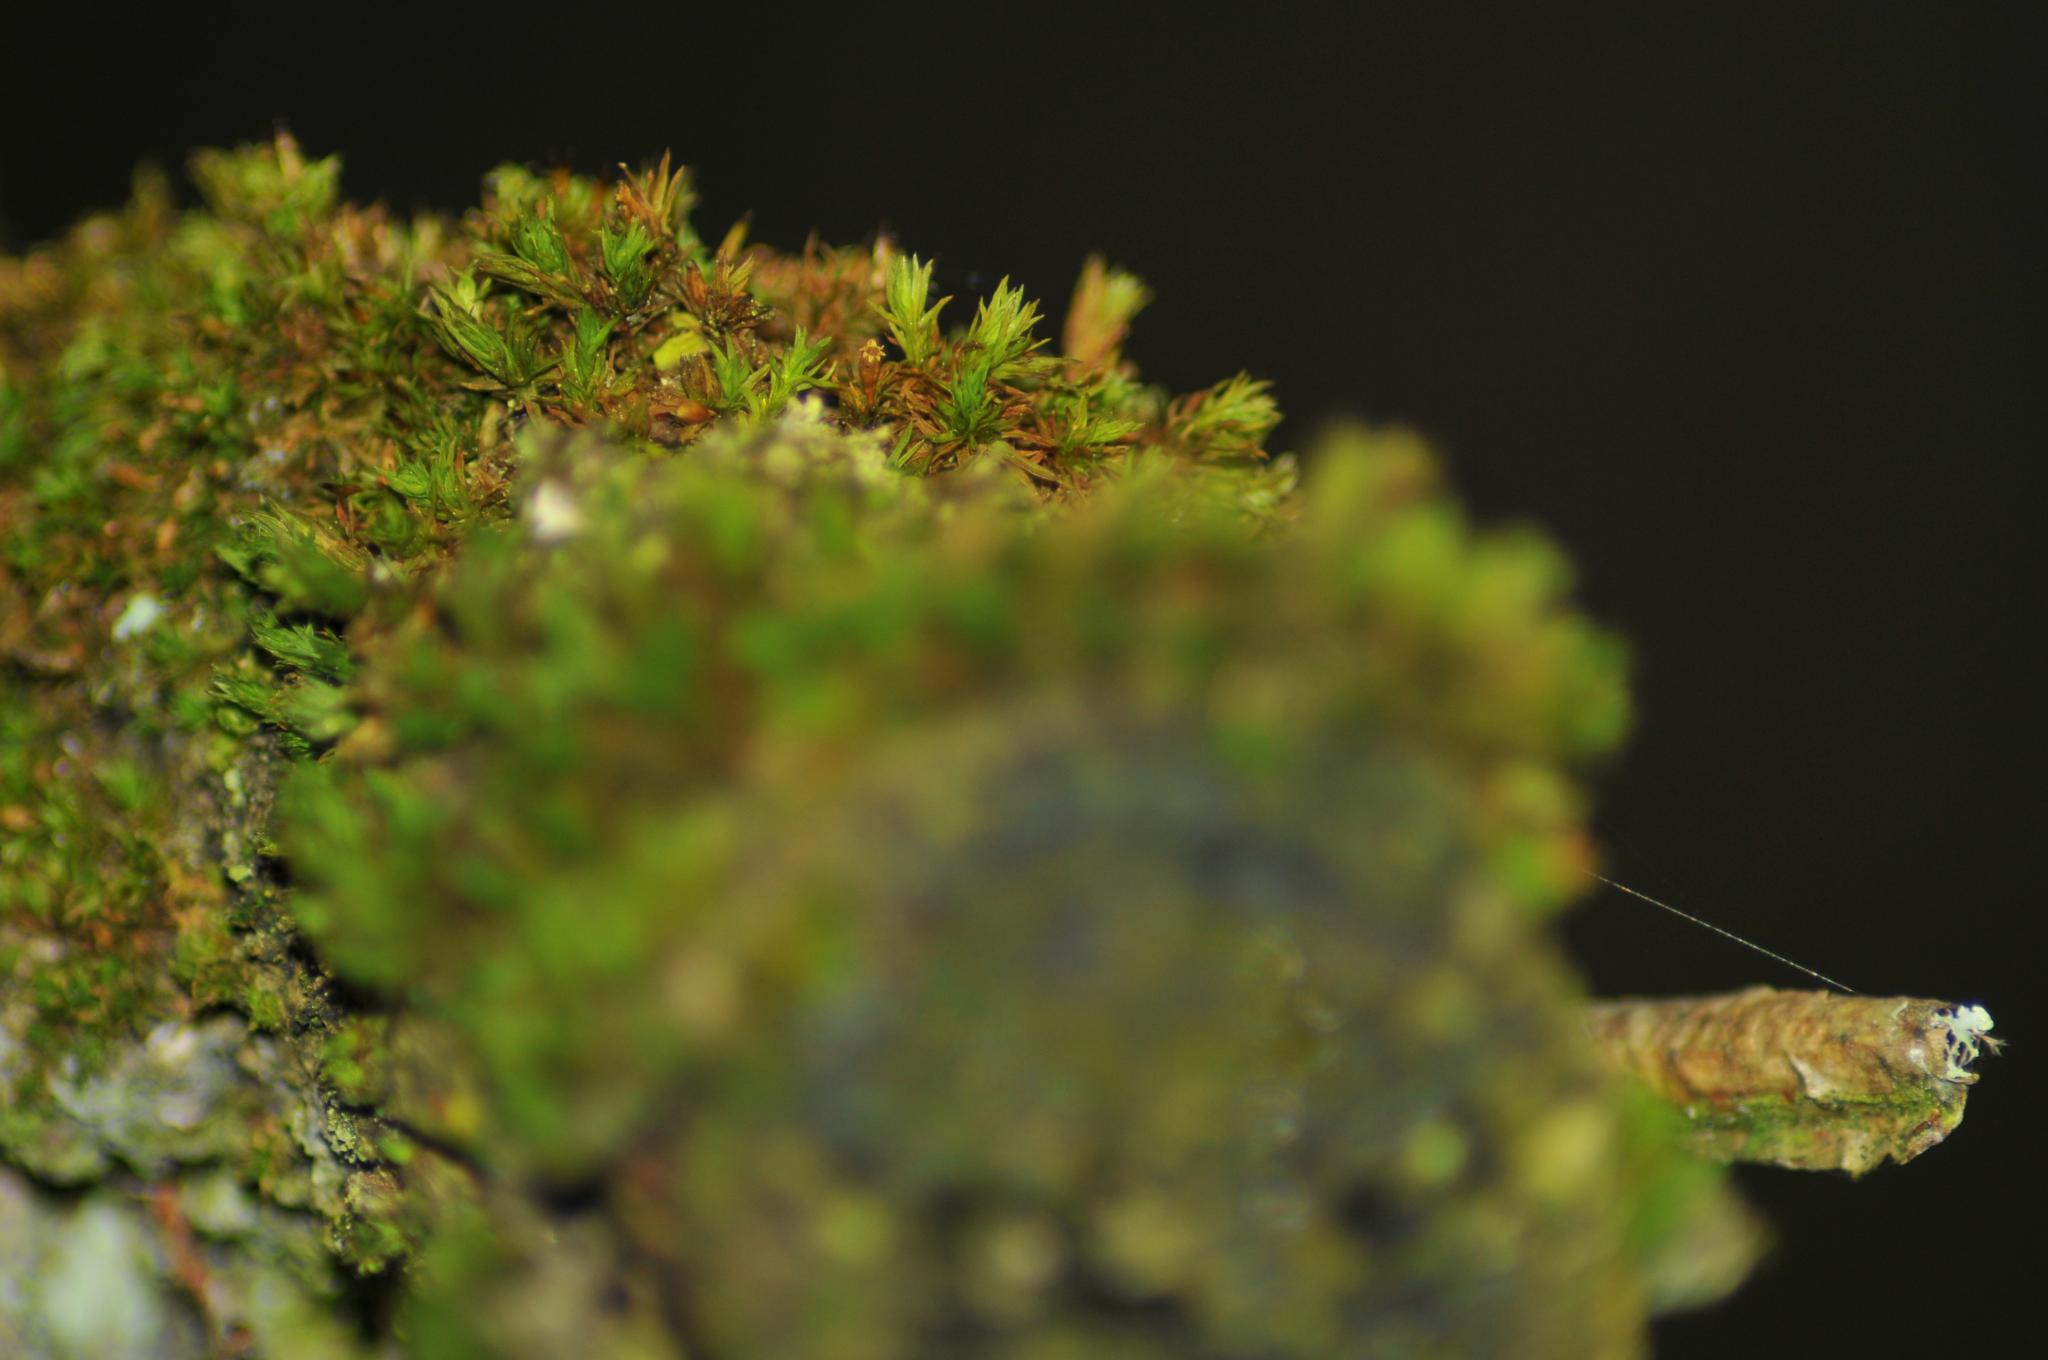 Macro on a sawed off branch by Steen Skov